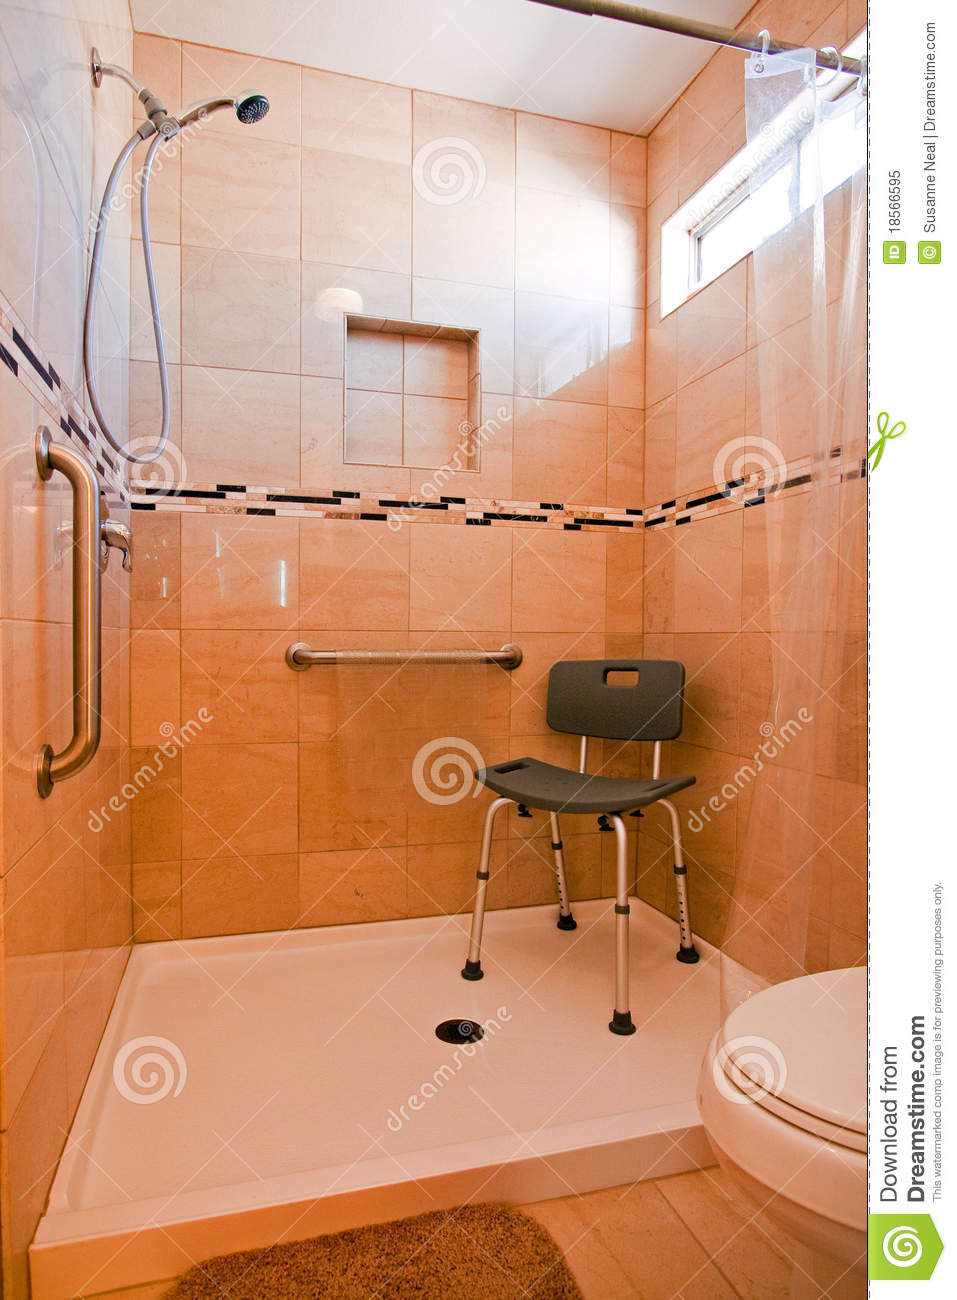 Handicapped Shower Stall Royalty Free Stock Photo - Image: 18566595